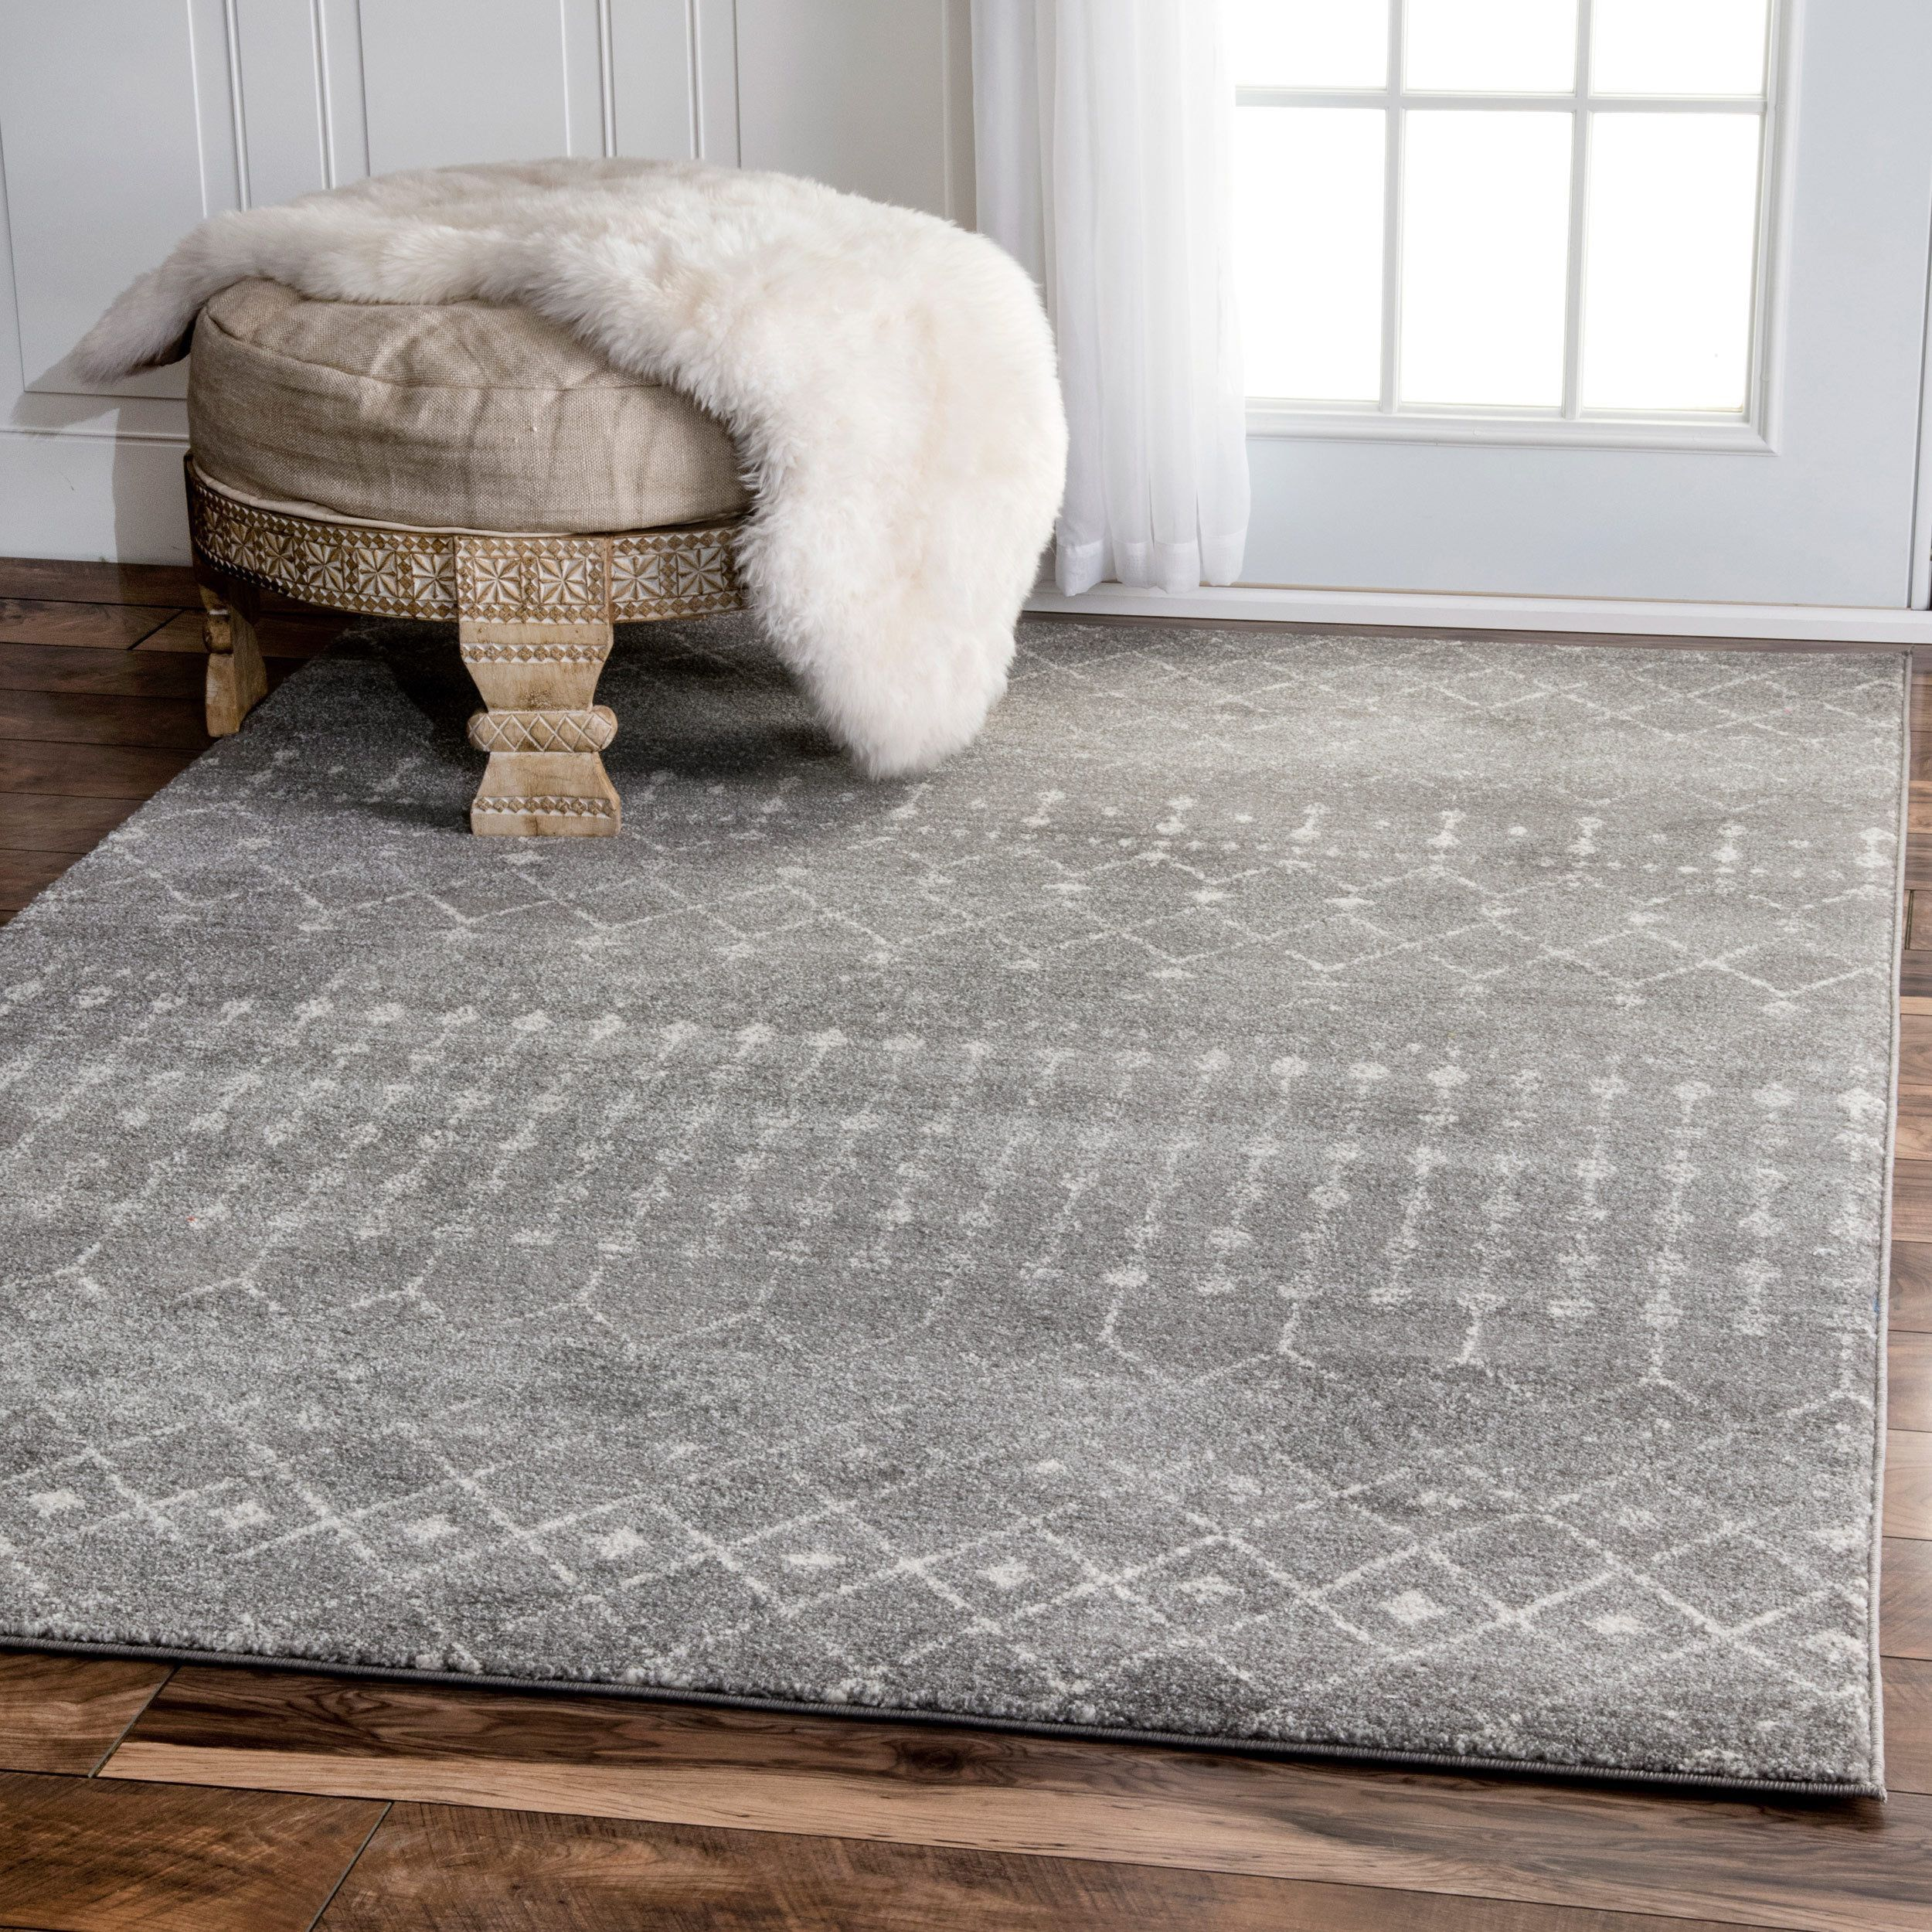 Grey,Ivory,9 X 12 Area Rug,Indoor Home Goods: Free Shipping